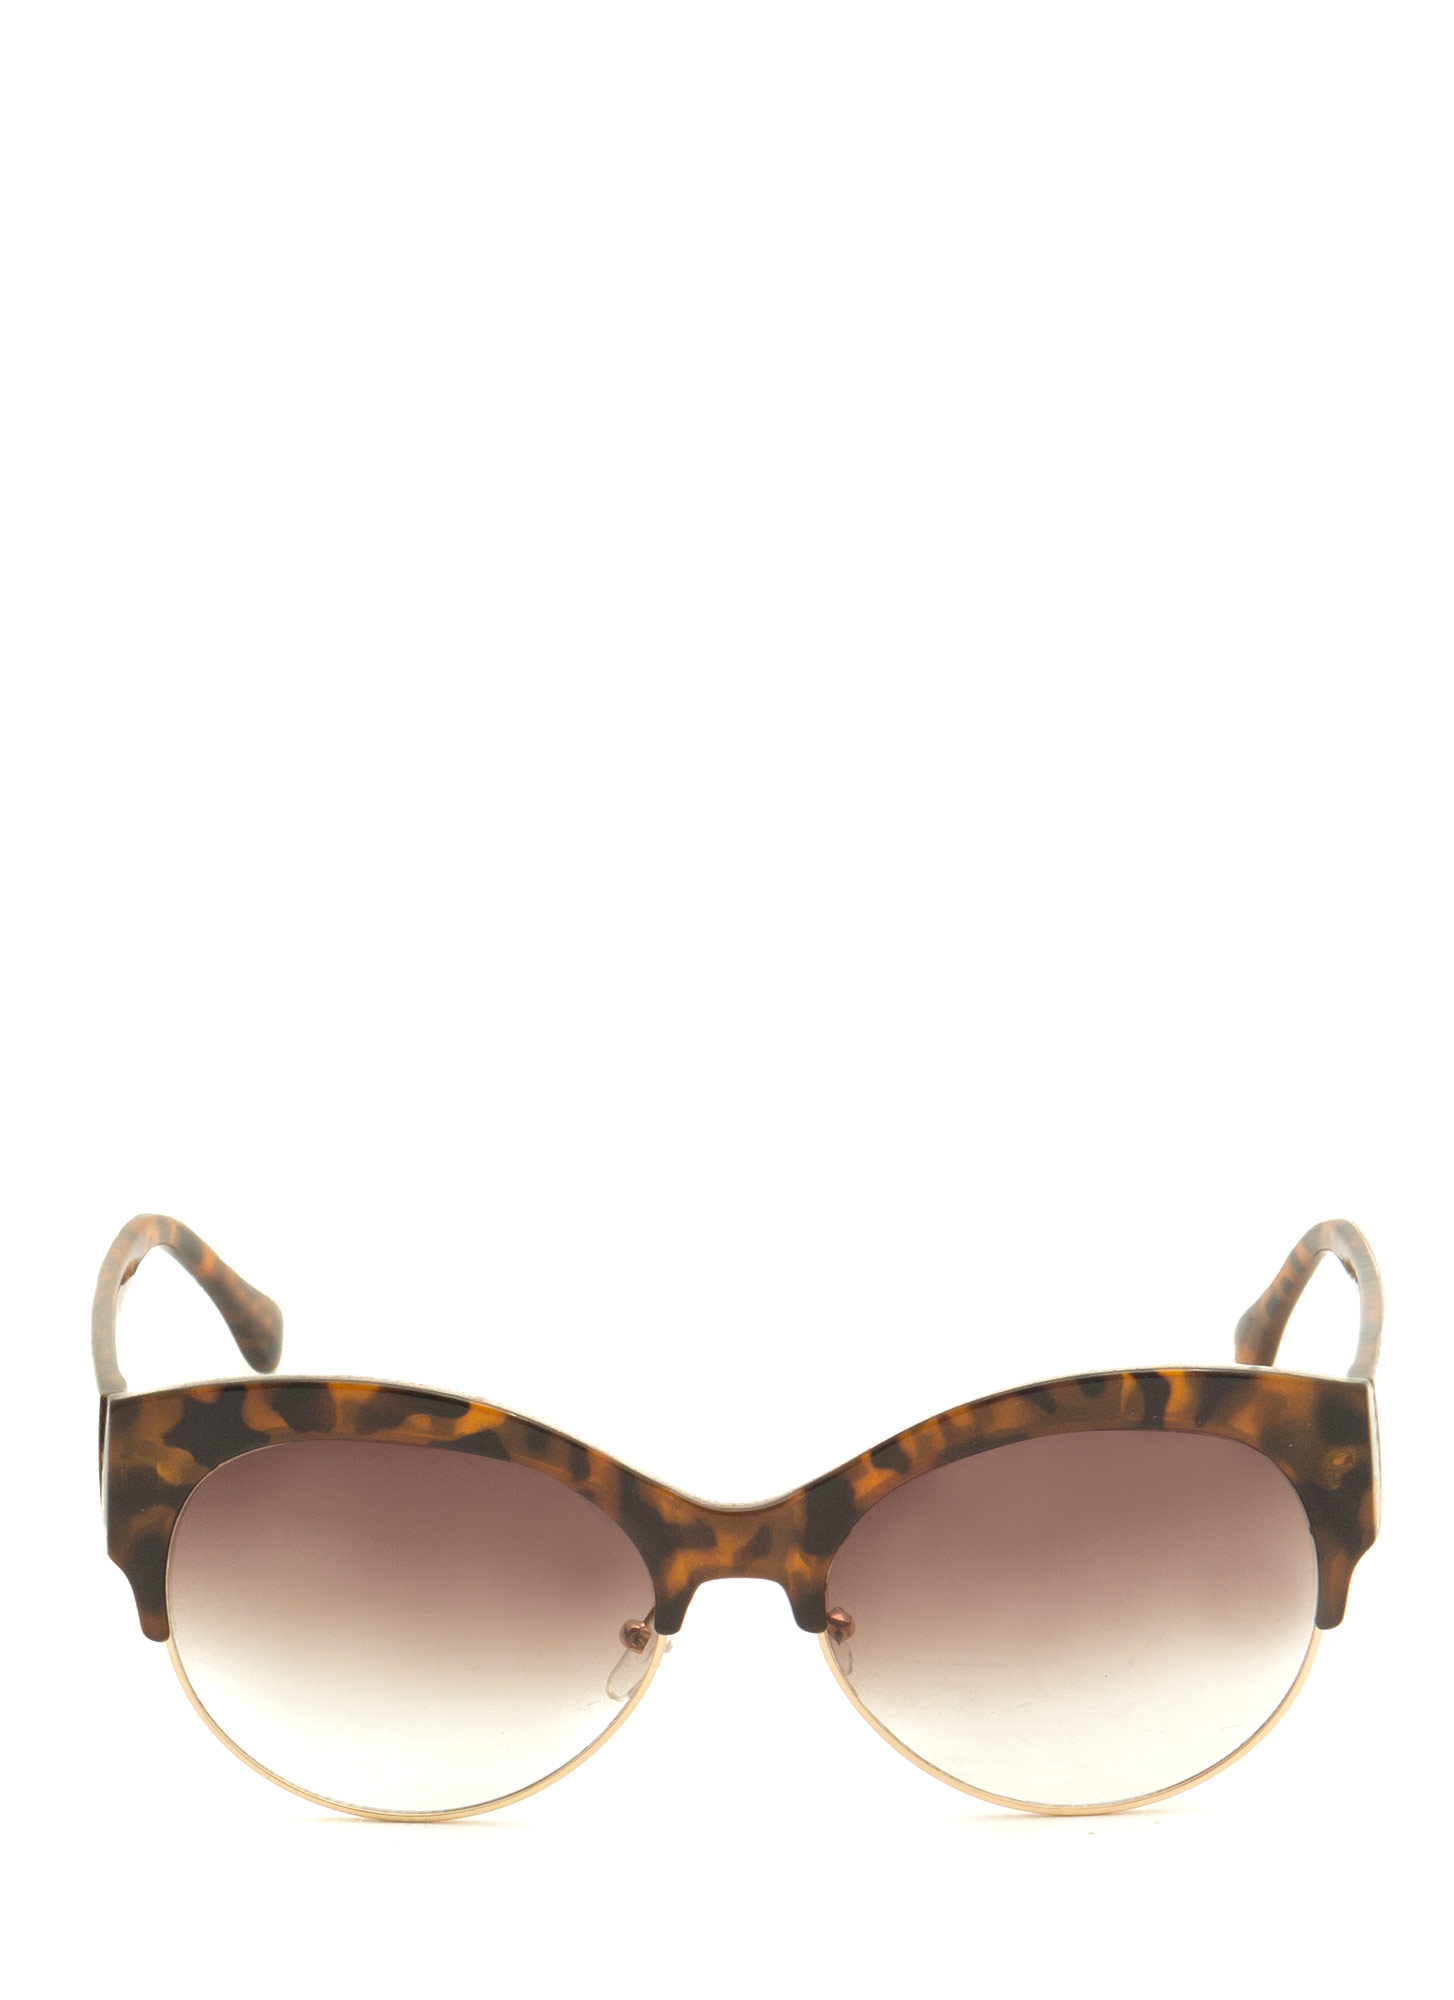 Cool Cat Cat Eye Sunglasses LTTORTOISE